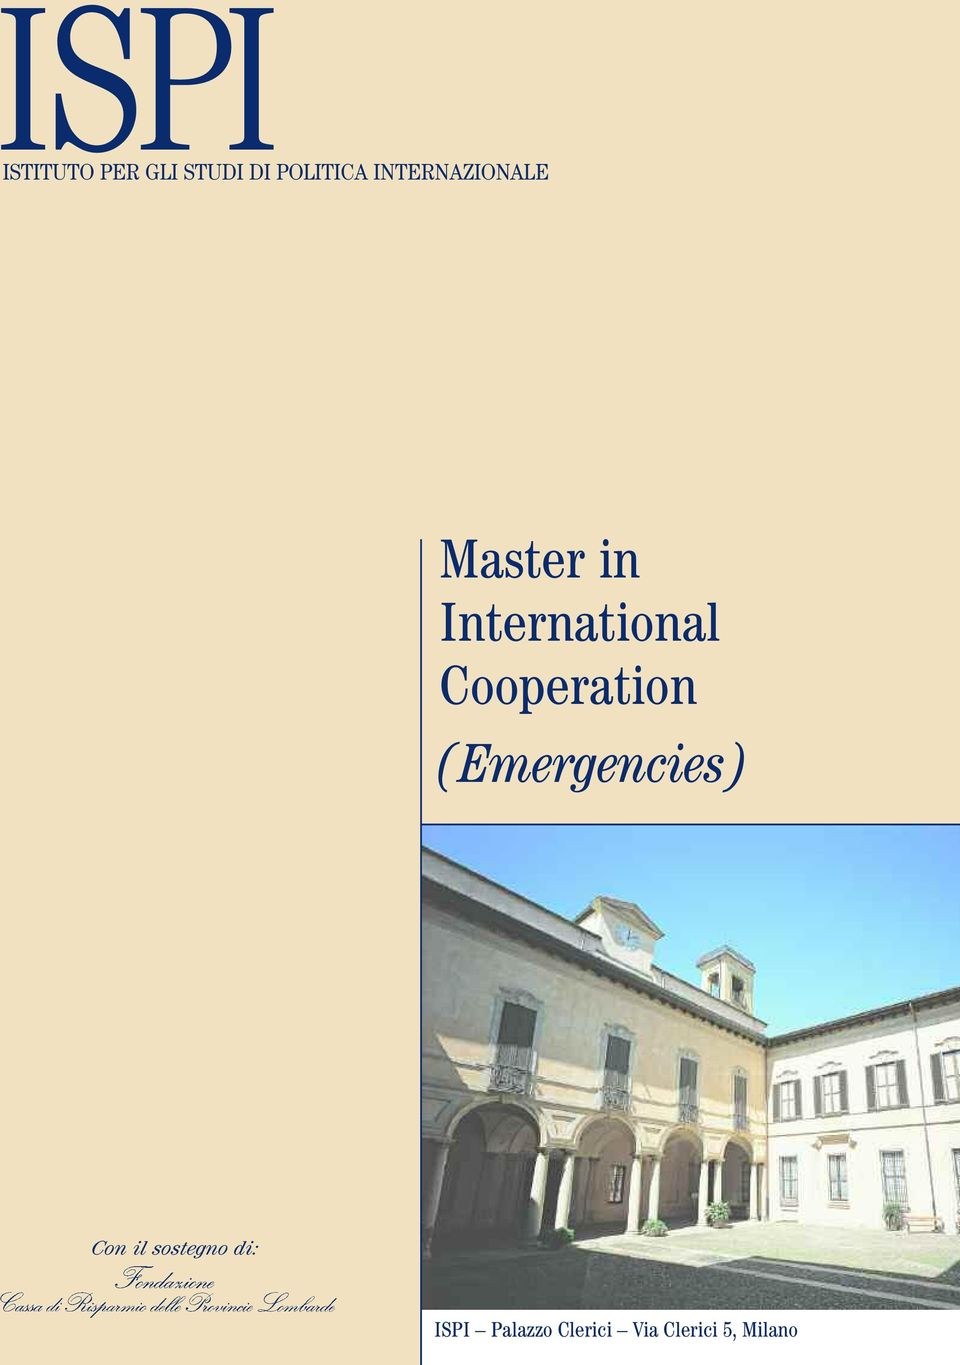 Cooperation (Emergencies) Con il